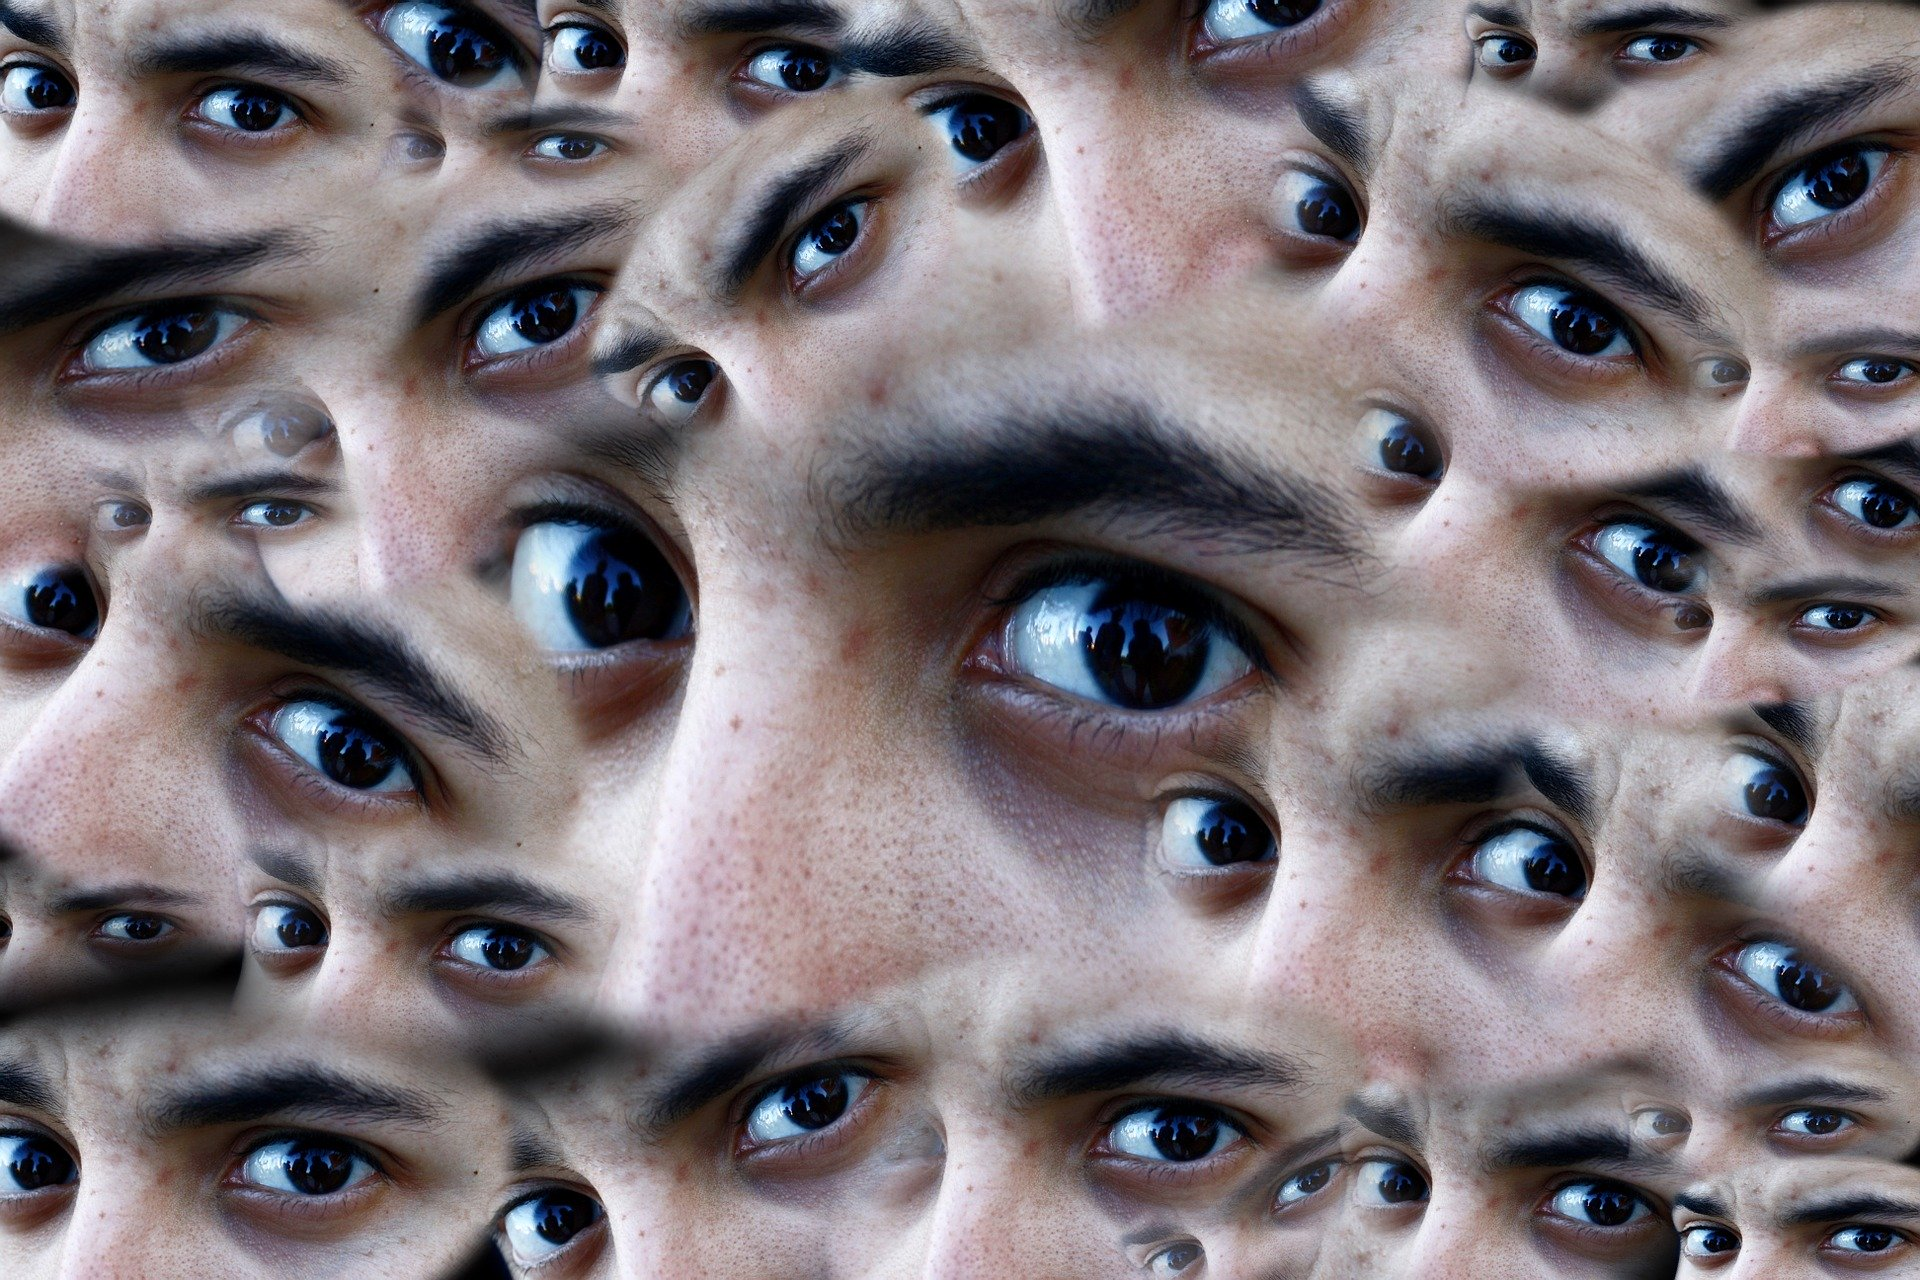 Montage of a man's eyes (tight shot) from various angles.